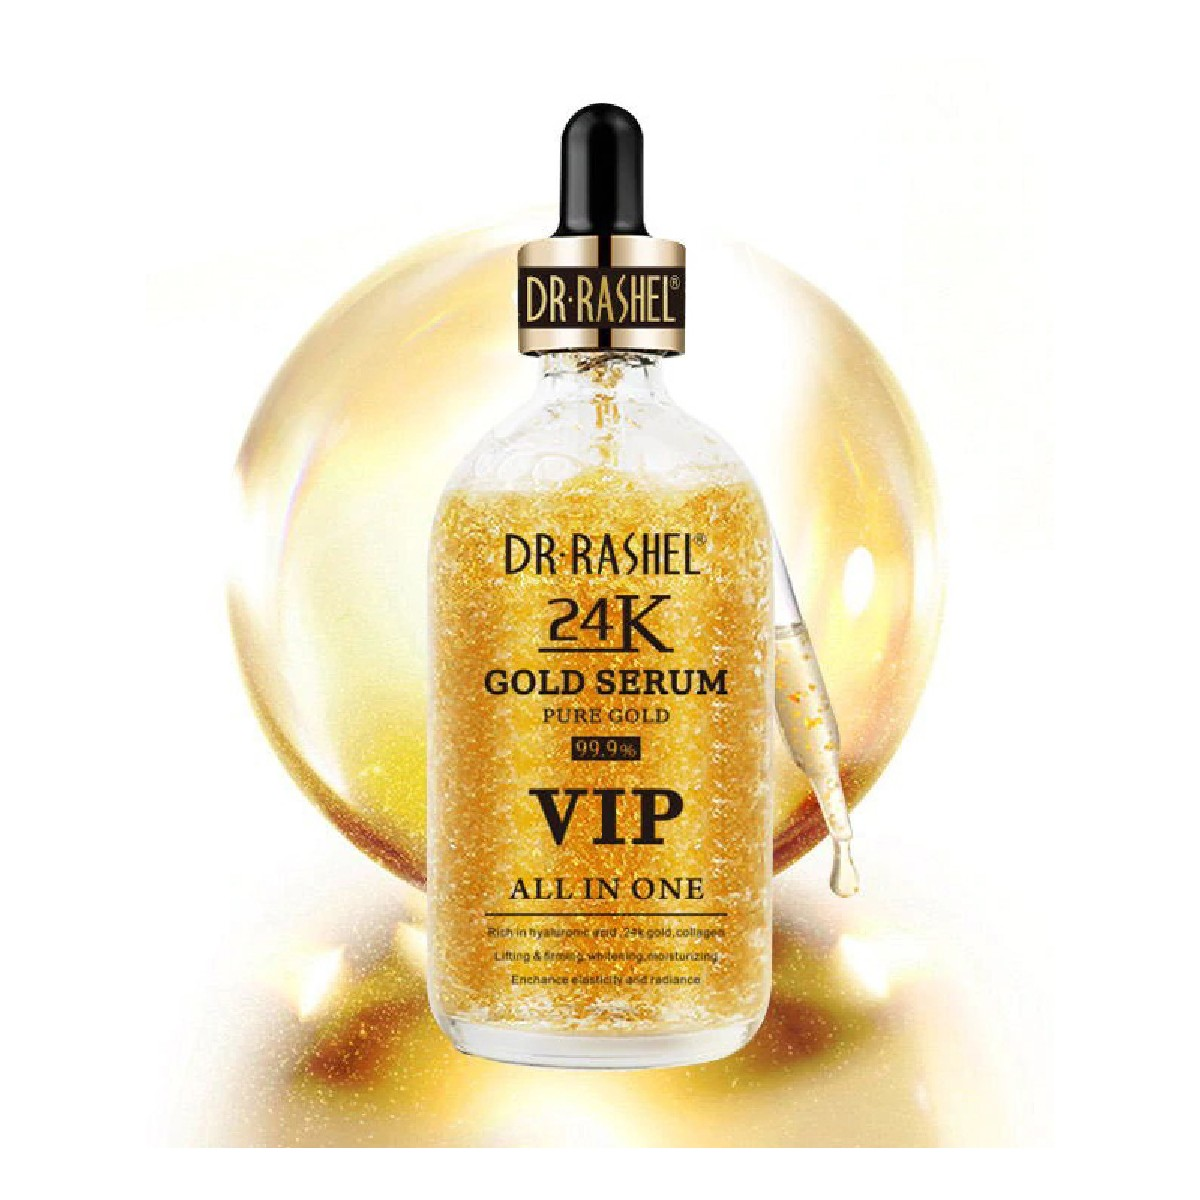 DR.RASHEL Face Care Anti Aging 24K Gold Serum VIP ALL IN ONE DRL-1427